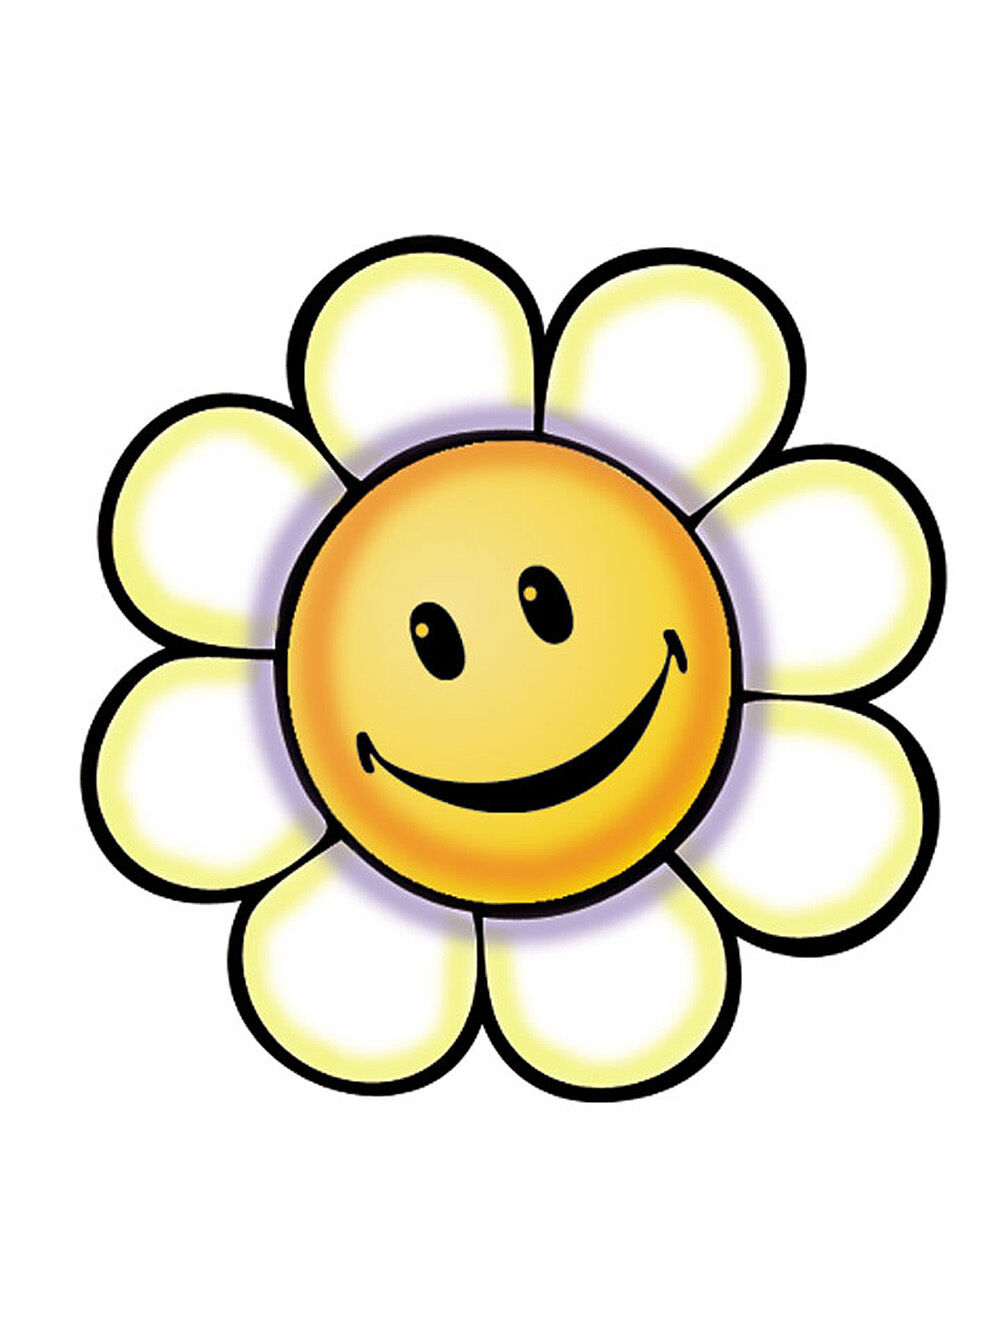 25 Retro Flower Power Smily Face Daisy Yellow Wallies Wall Cutout ...